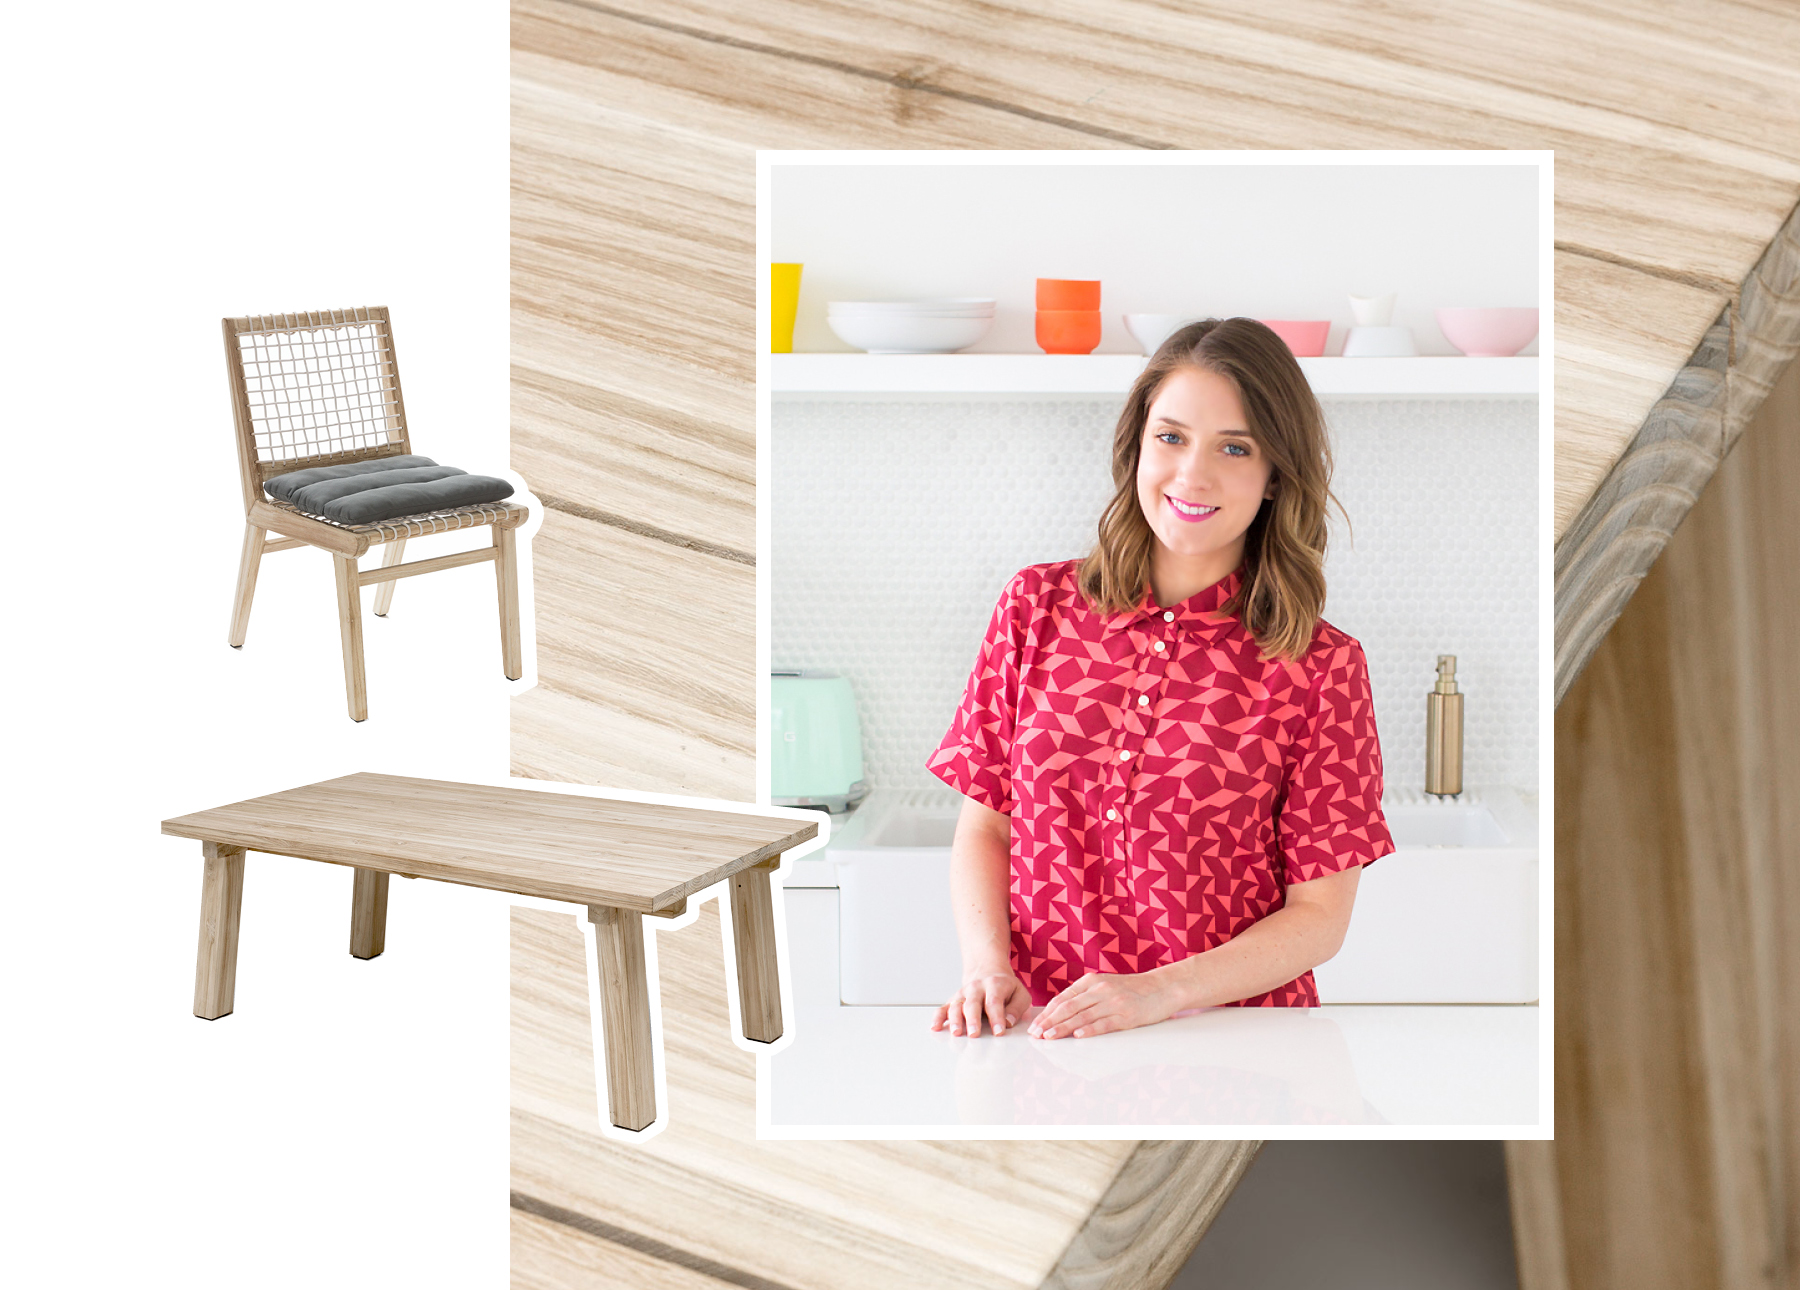 Ashley Rose, Creator of Sugar&Cloth, with a Teaka dining table & chairs